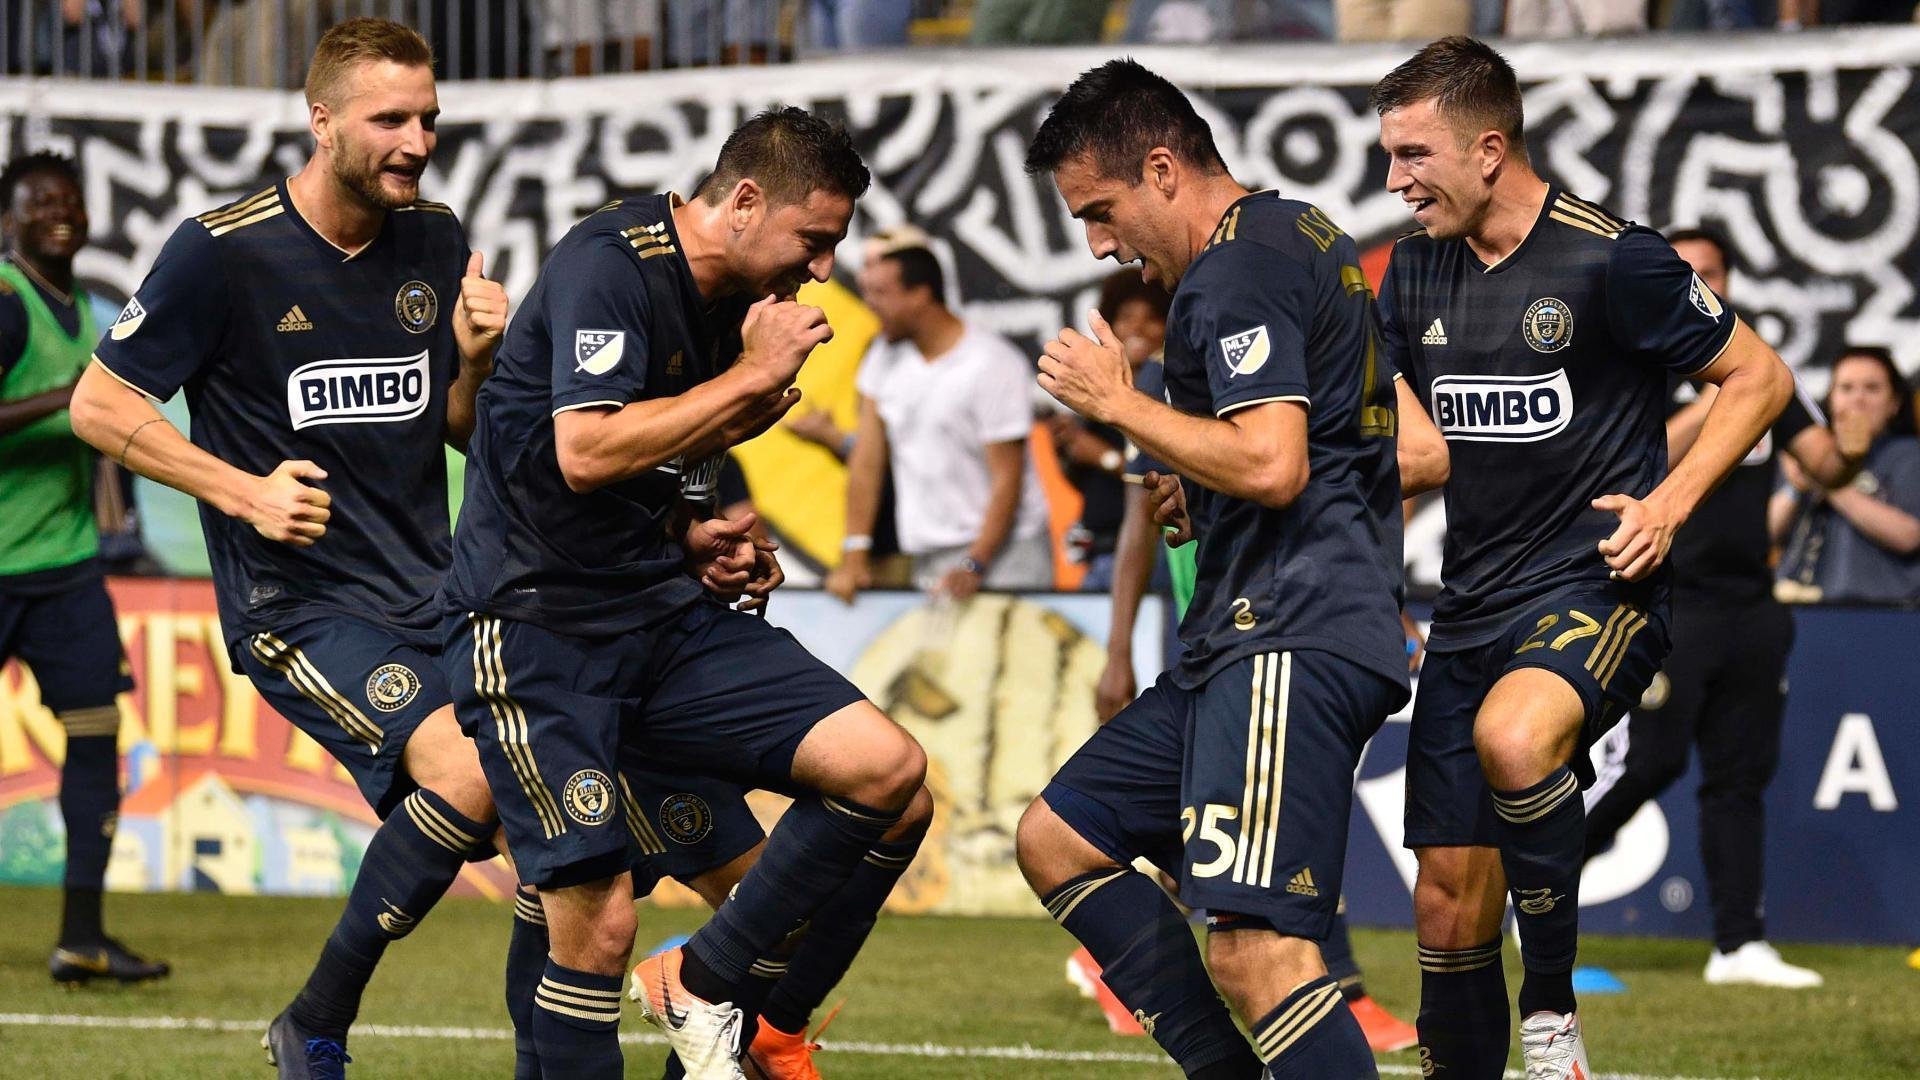 Union come from 2-0 down to beat Red Bulls